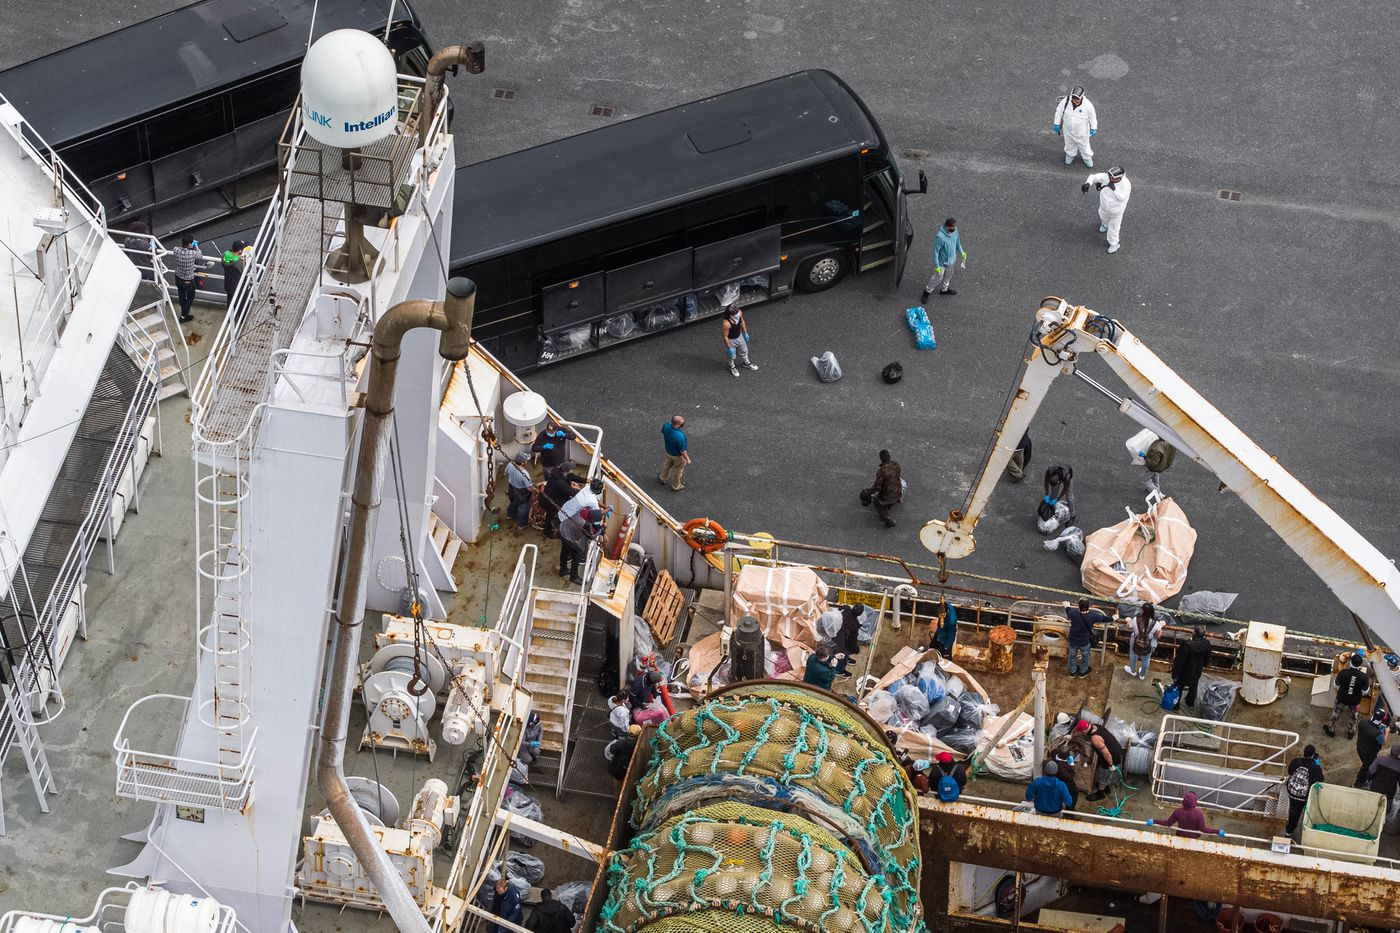 JULY 22. Crew disembark from the American Triumph and board busses in Seward. American Seafoods, which operates the factory trawler, reported over the weekend that 85 crew members tested positive for COVID-19. The crew disembarked in Seward and will be transported to Anchorage where they will be isolated for further care. (Loren Holmes / ADN)